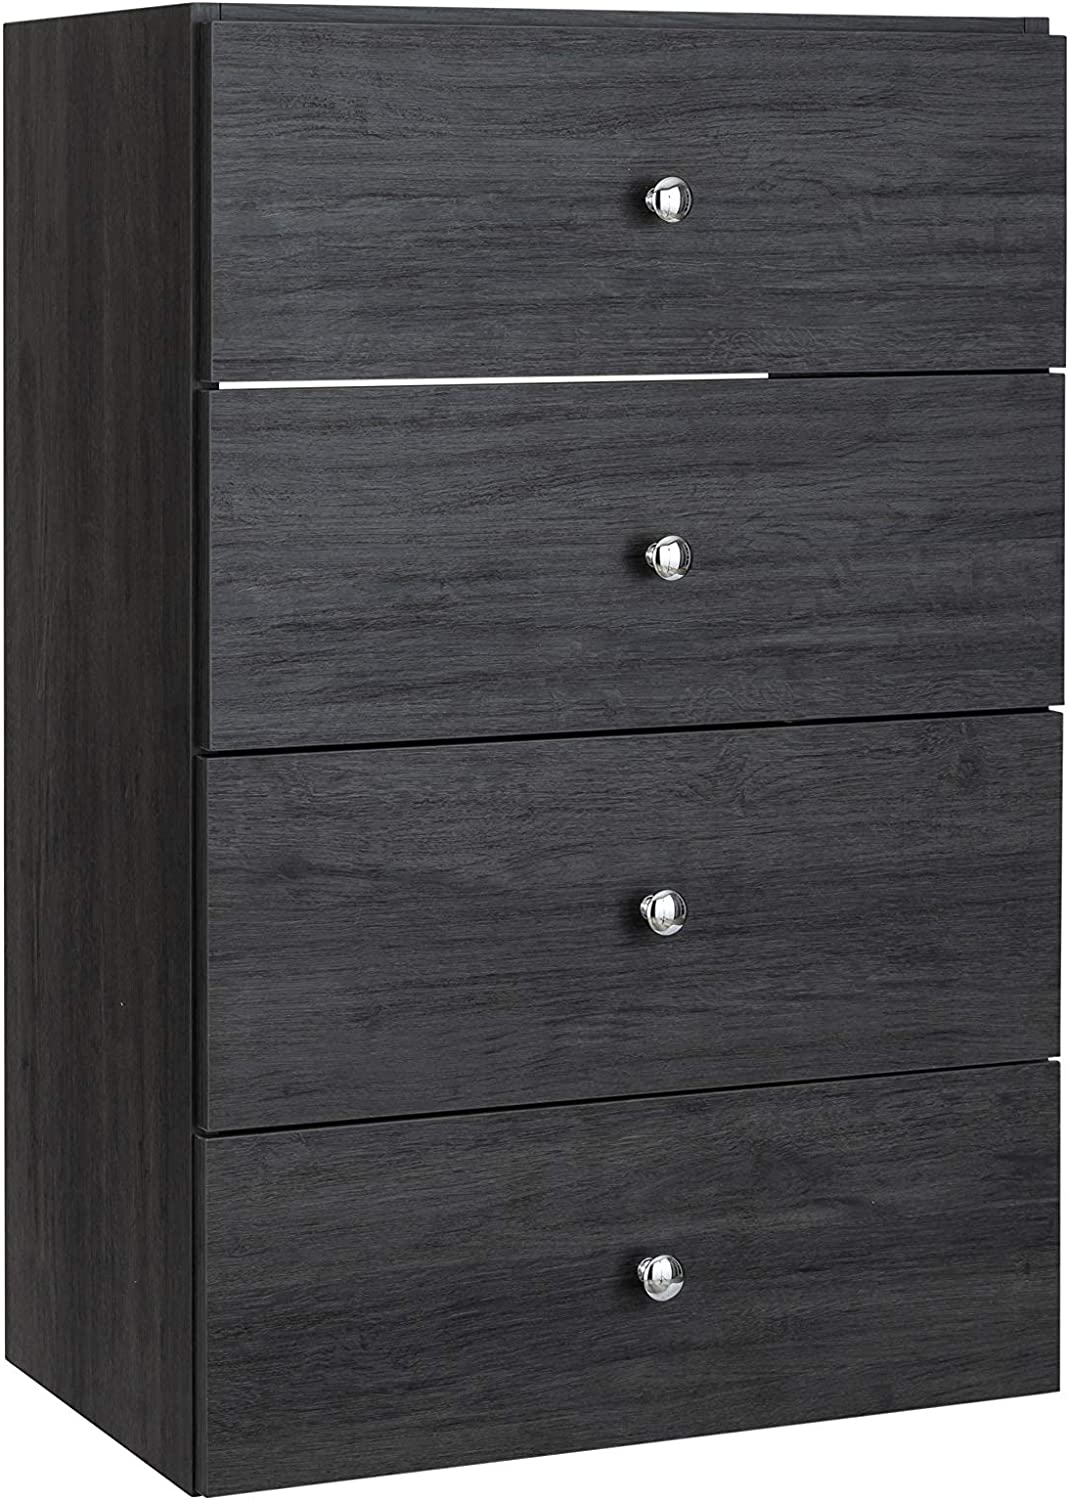 Modular Closets Vista Collection Short Whi 4 Tower Drawers with Very popular Sales